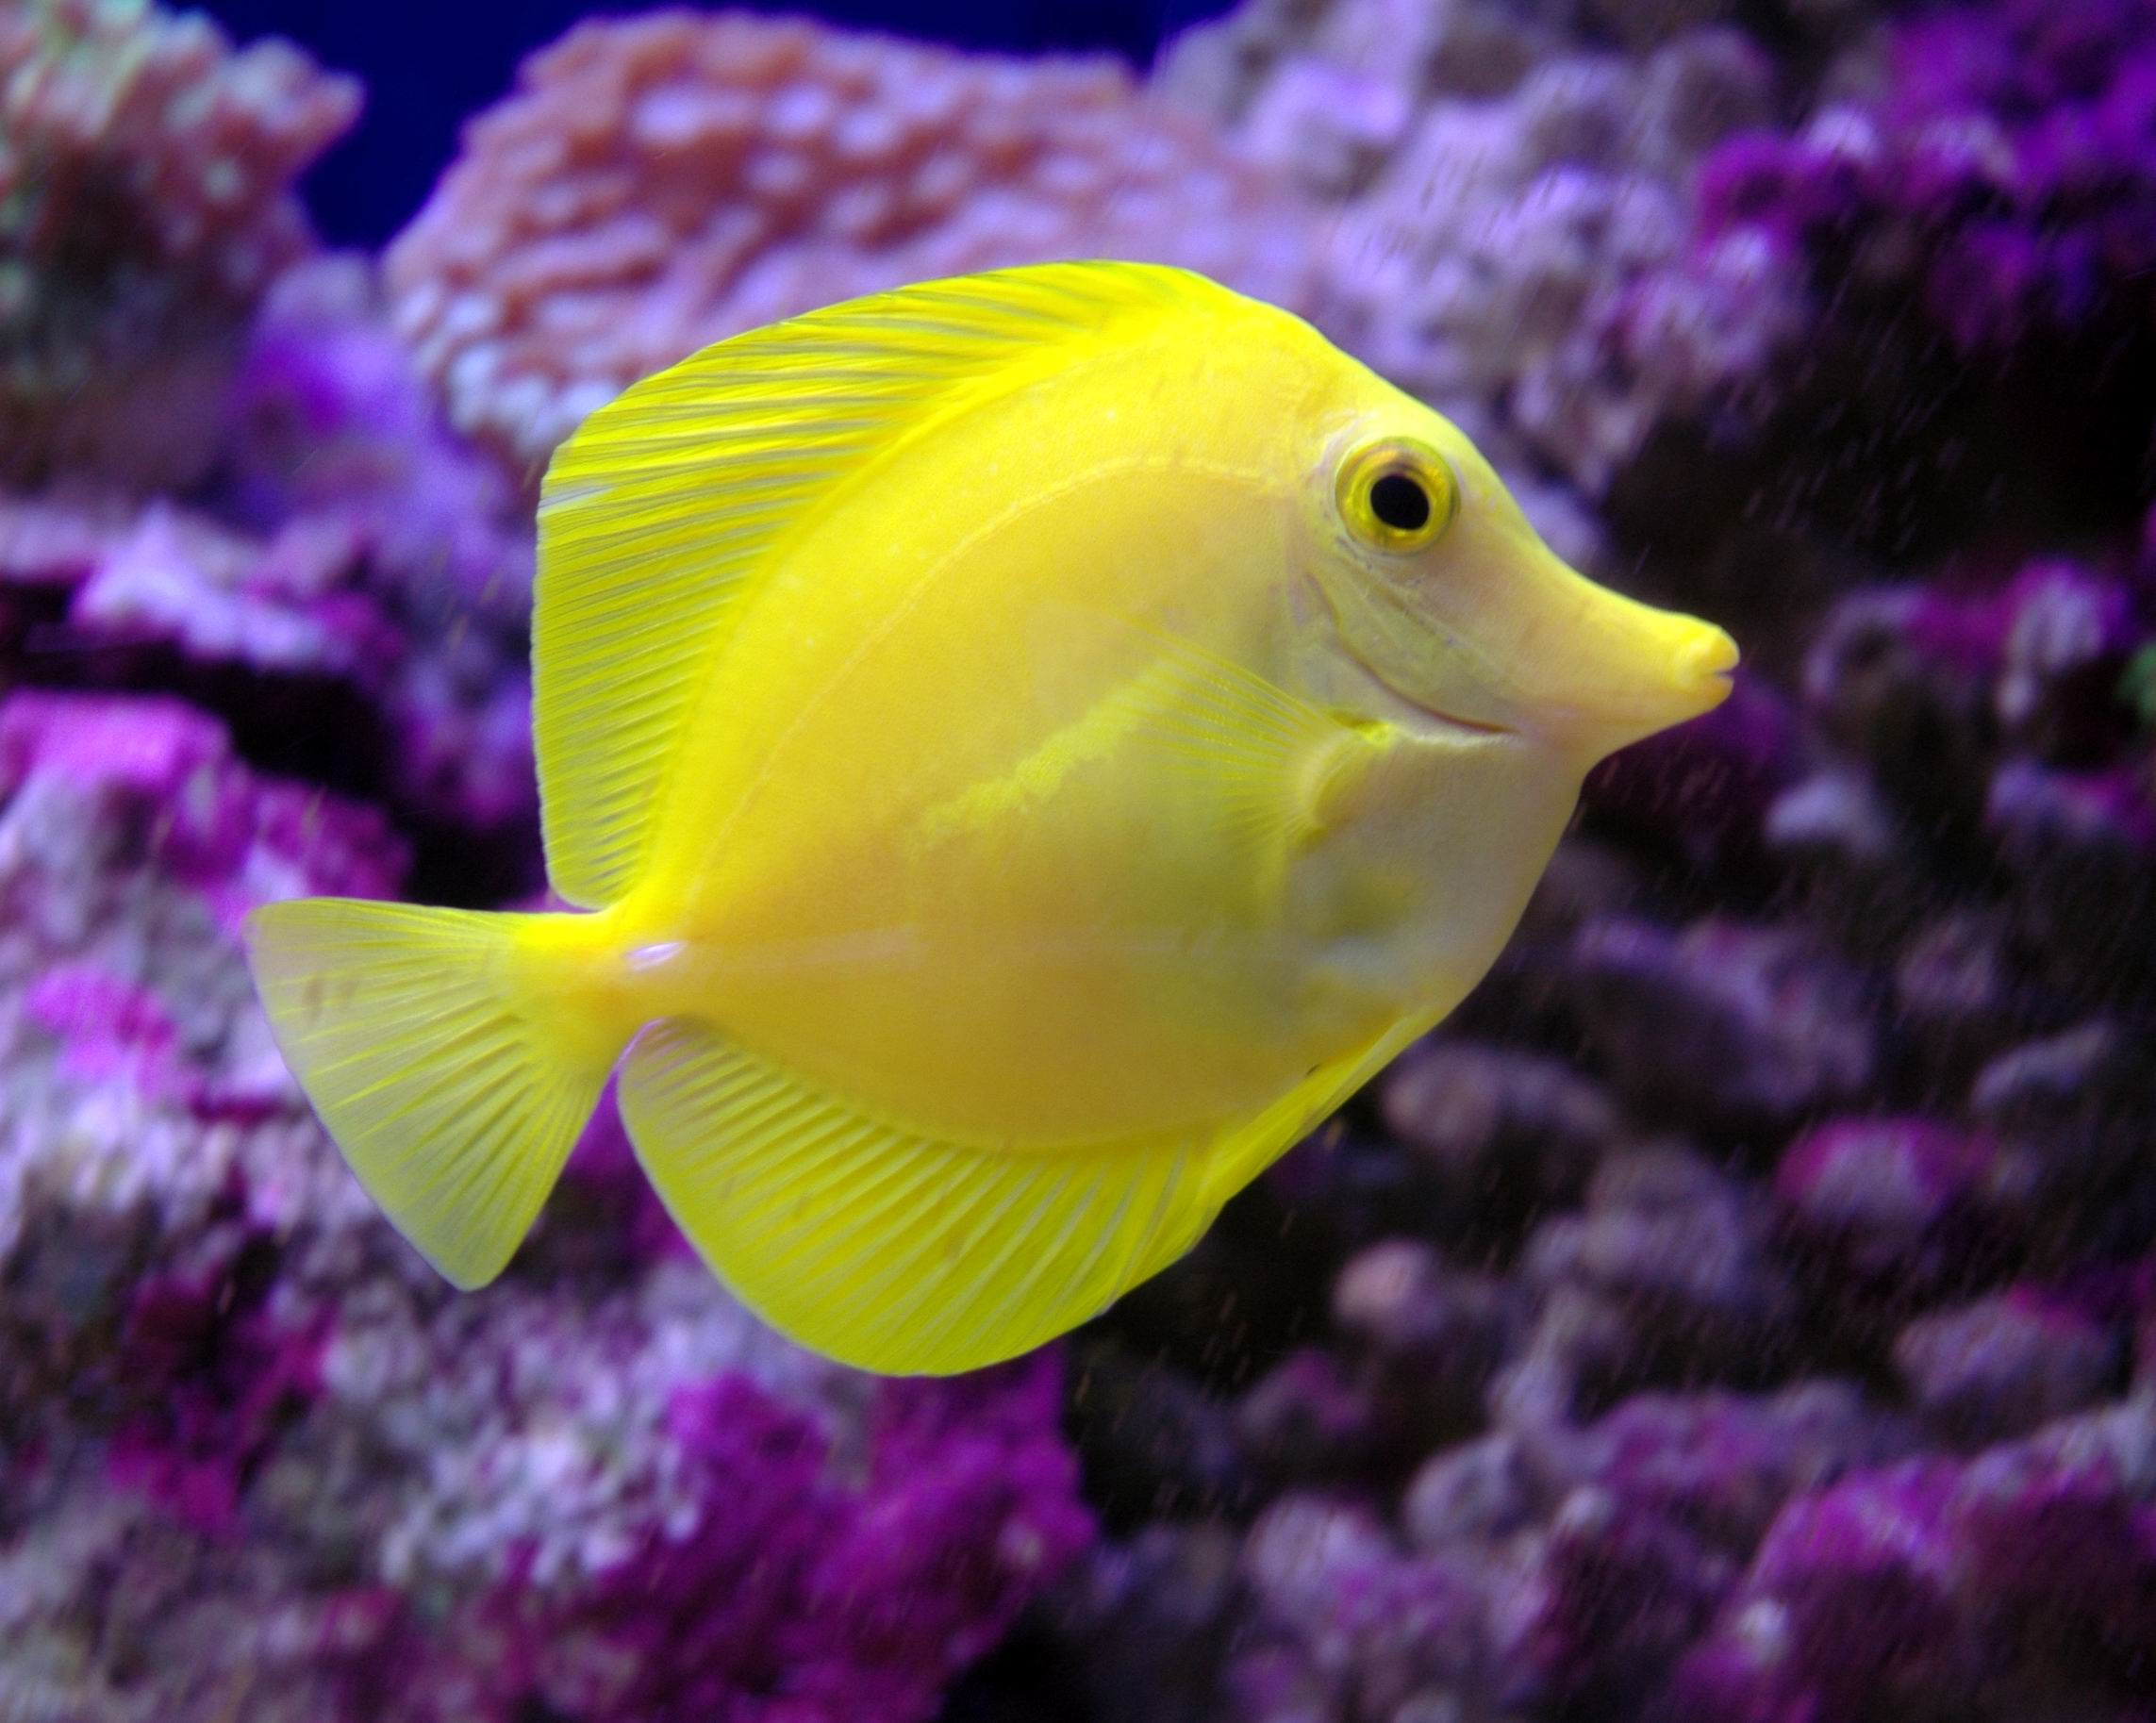 Aquarium fishes manufacturer in tamil nadu india by for Wholesale tropical fish